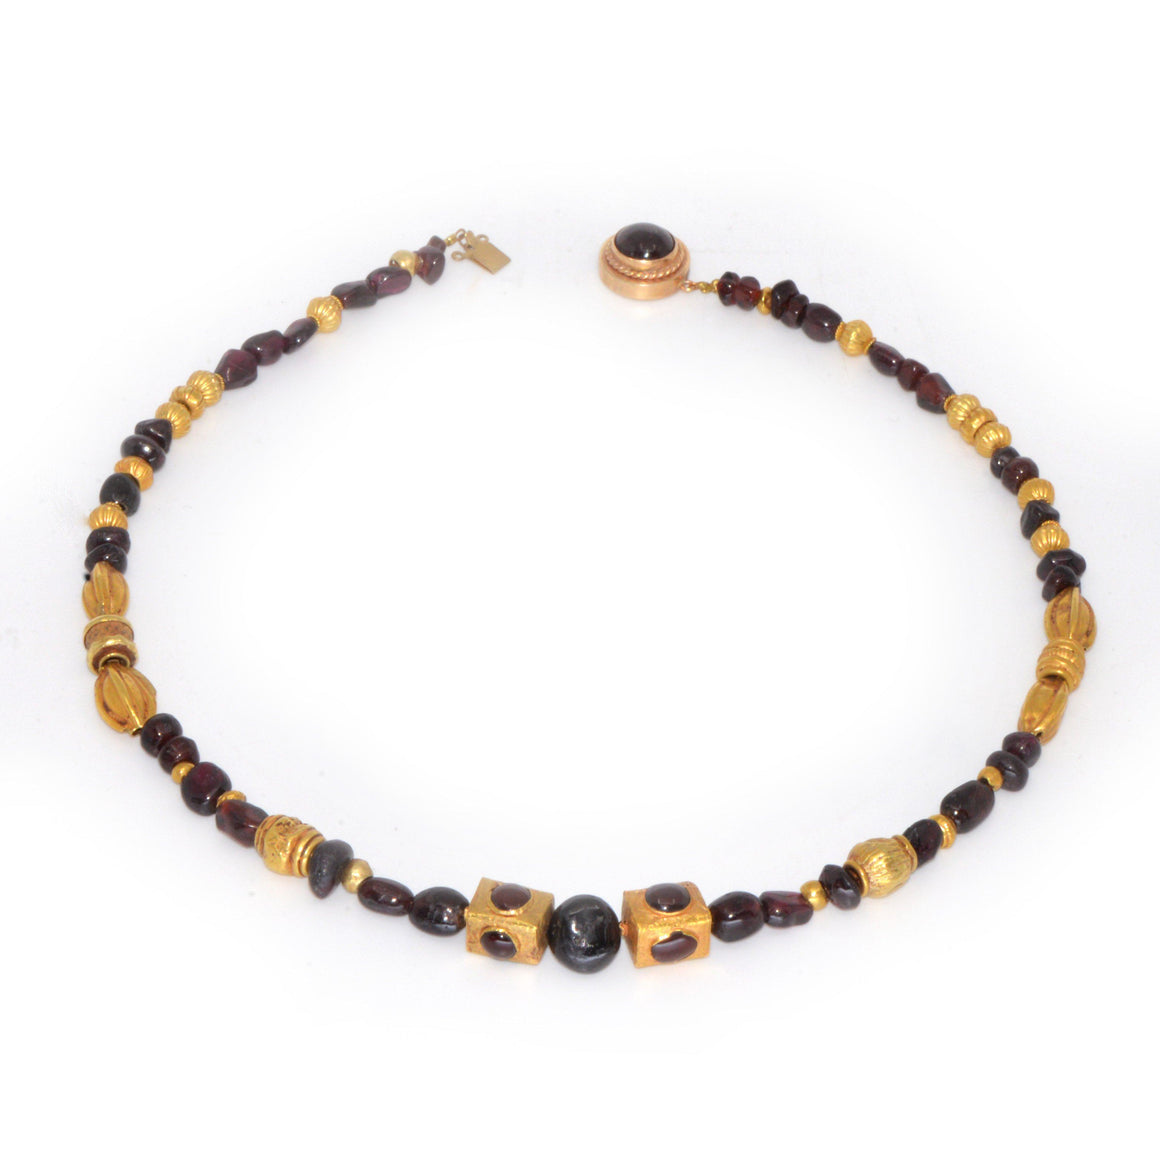 * A superb Gold and Garnet Bead Necklace, Achaemenid Period, Persia, ca 550 - 300 BC - Sands of Time Ancient Art